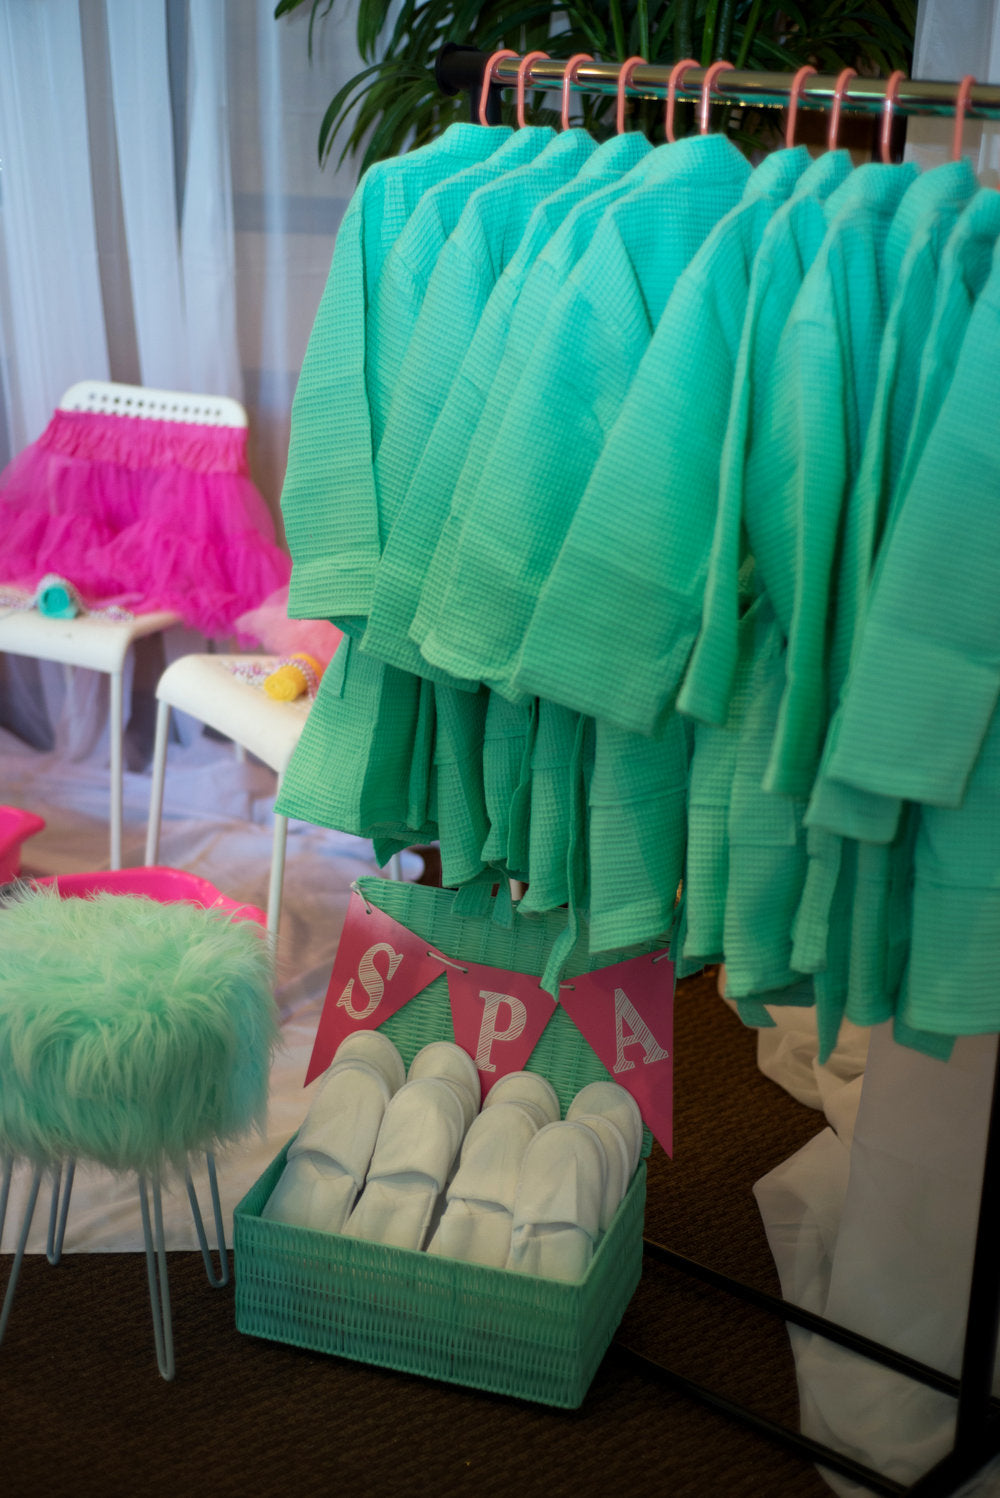 Rack of fluffy foam green spa robes and basket of white spa slippers